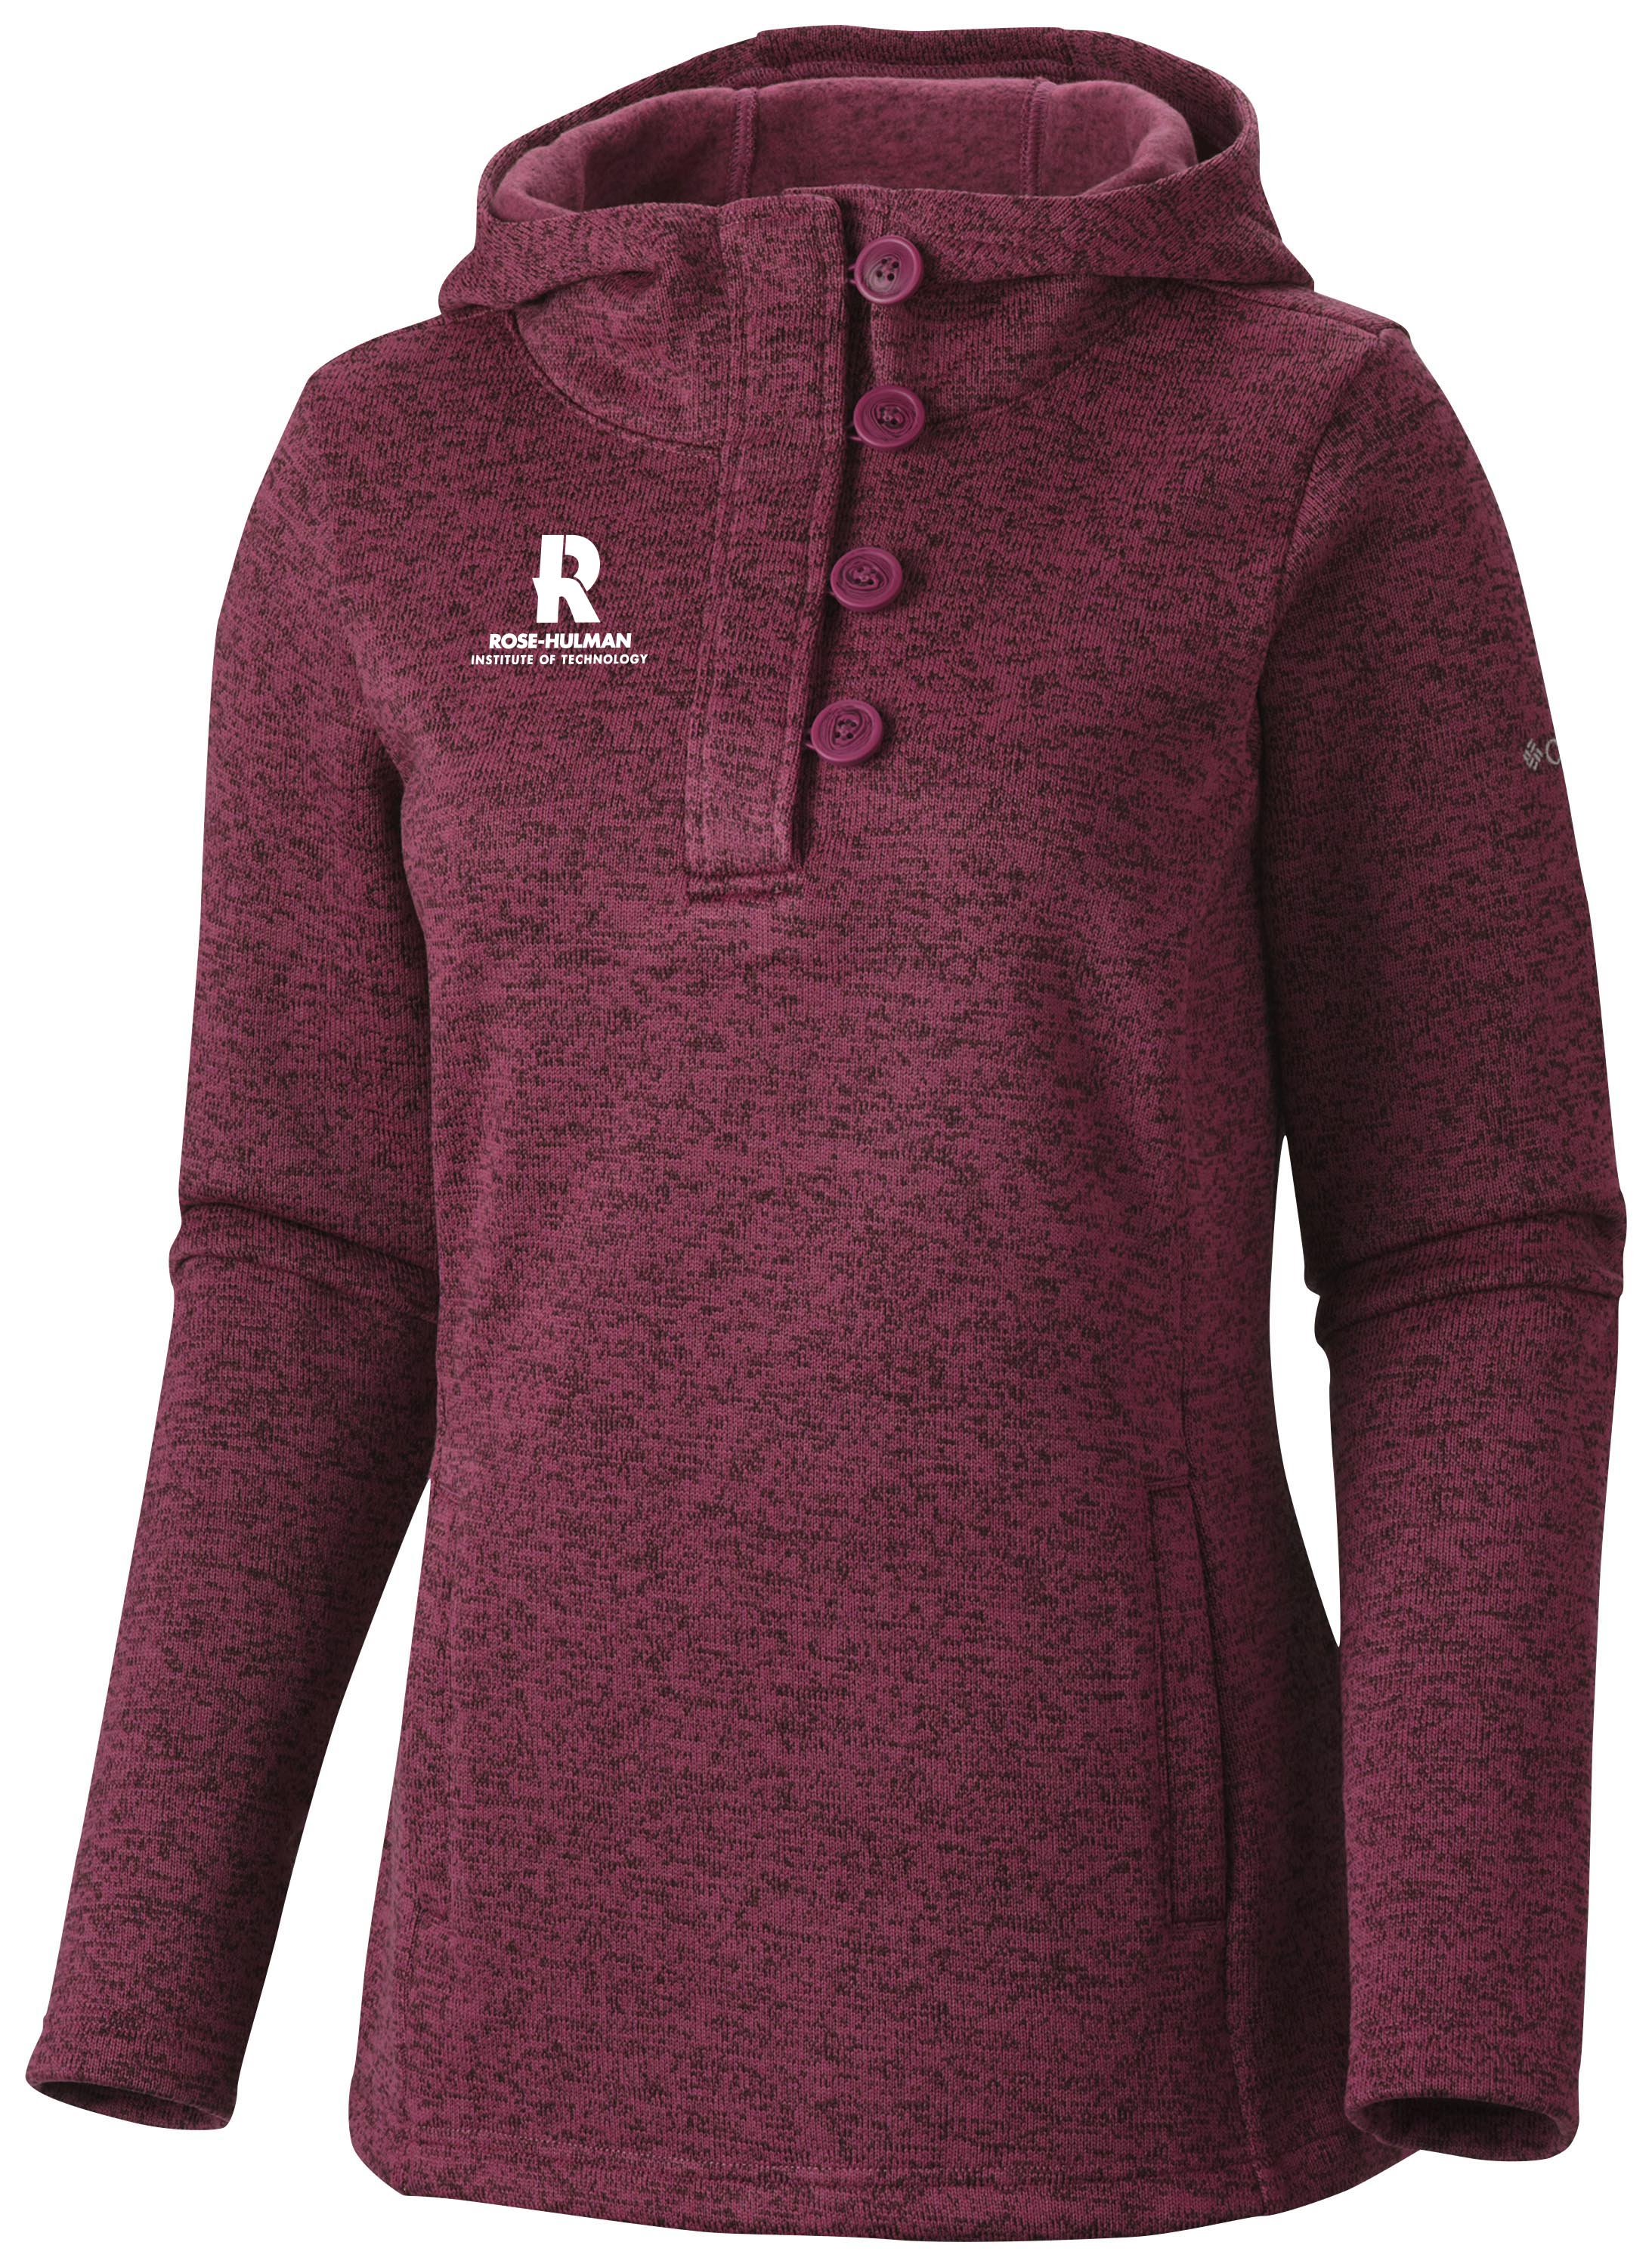 Image For Columbia Darling Days Ladies Hooded Sweatshirt